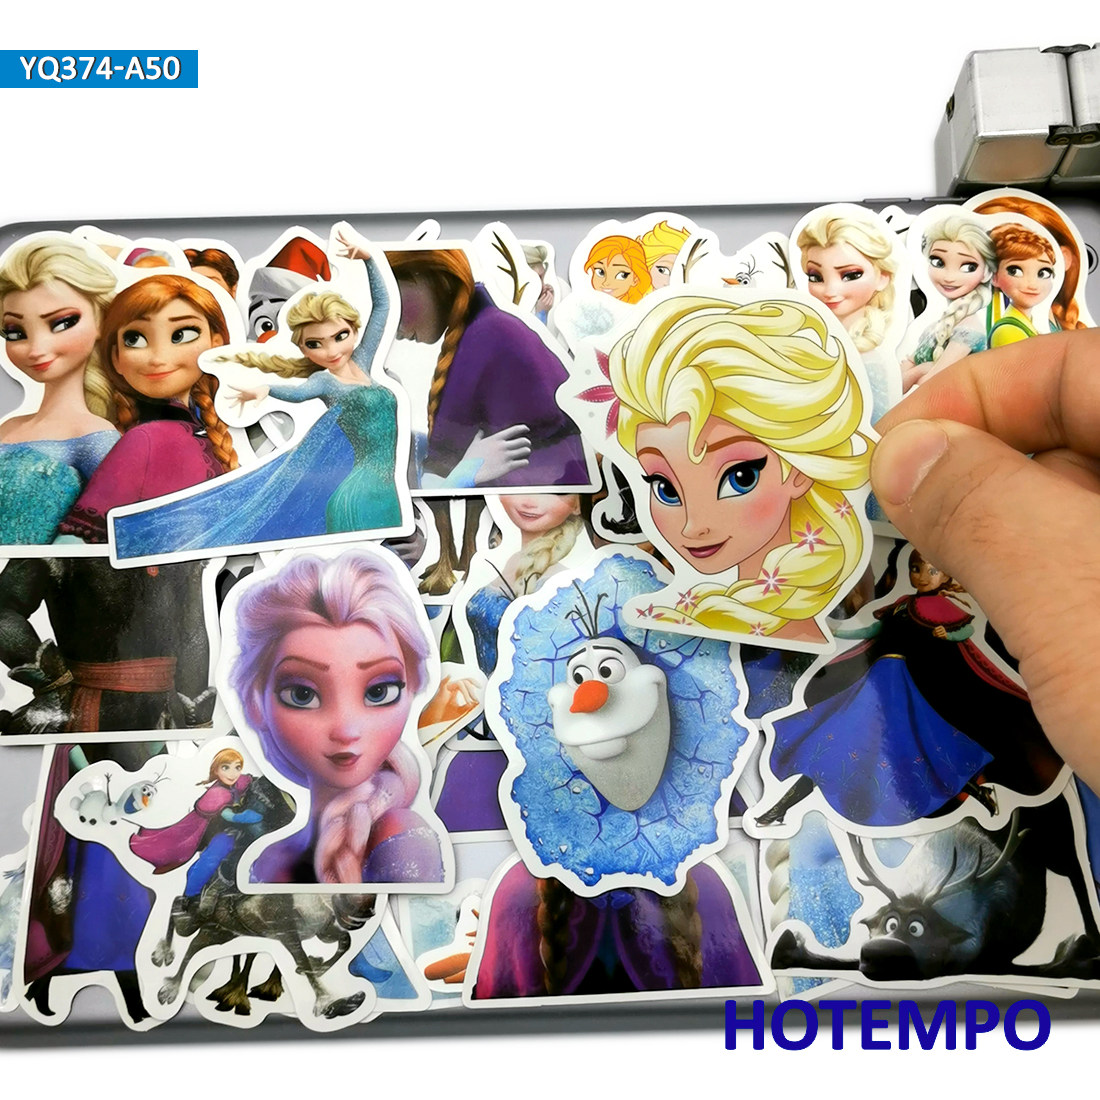 50pcs Anime Movie Cute Princess Elsa Anna Stickers Toys For Kids Girl Scrapbook Stationery Mobile Phone Laptop Luggage Stickers